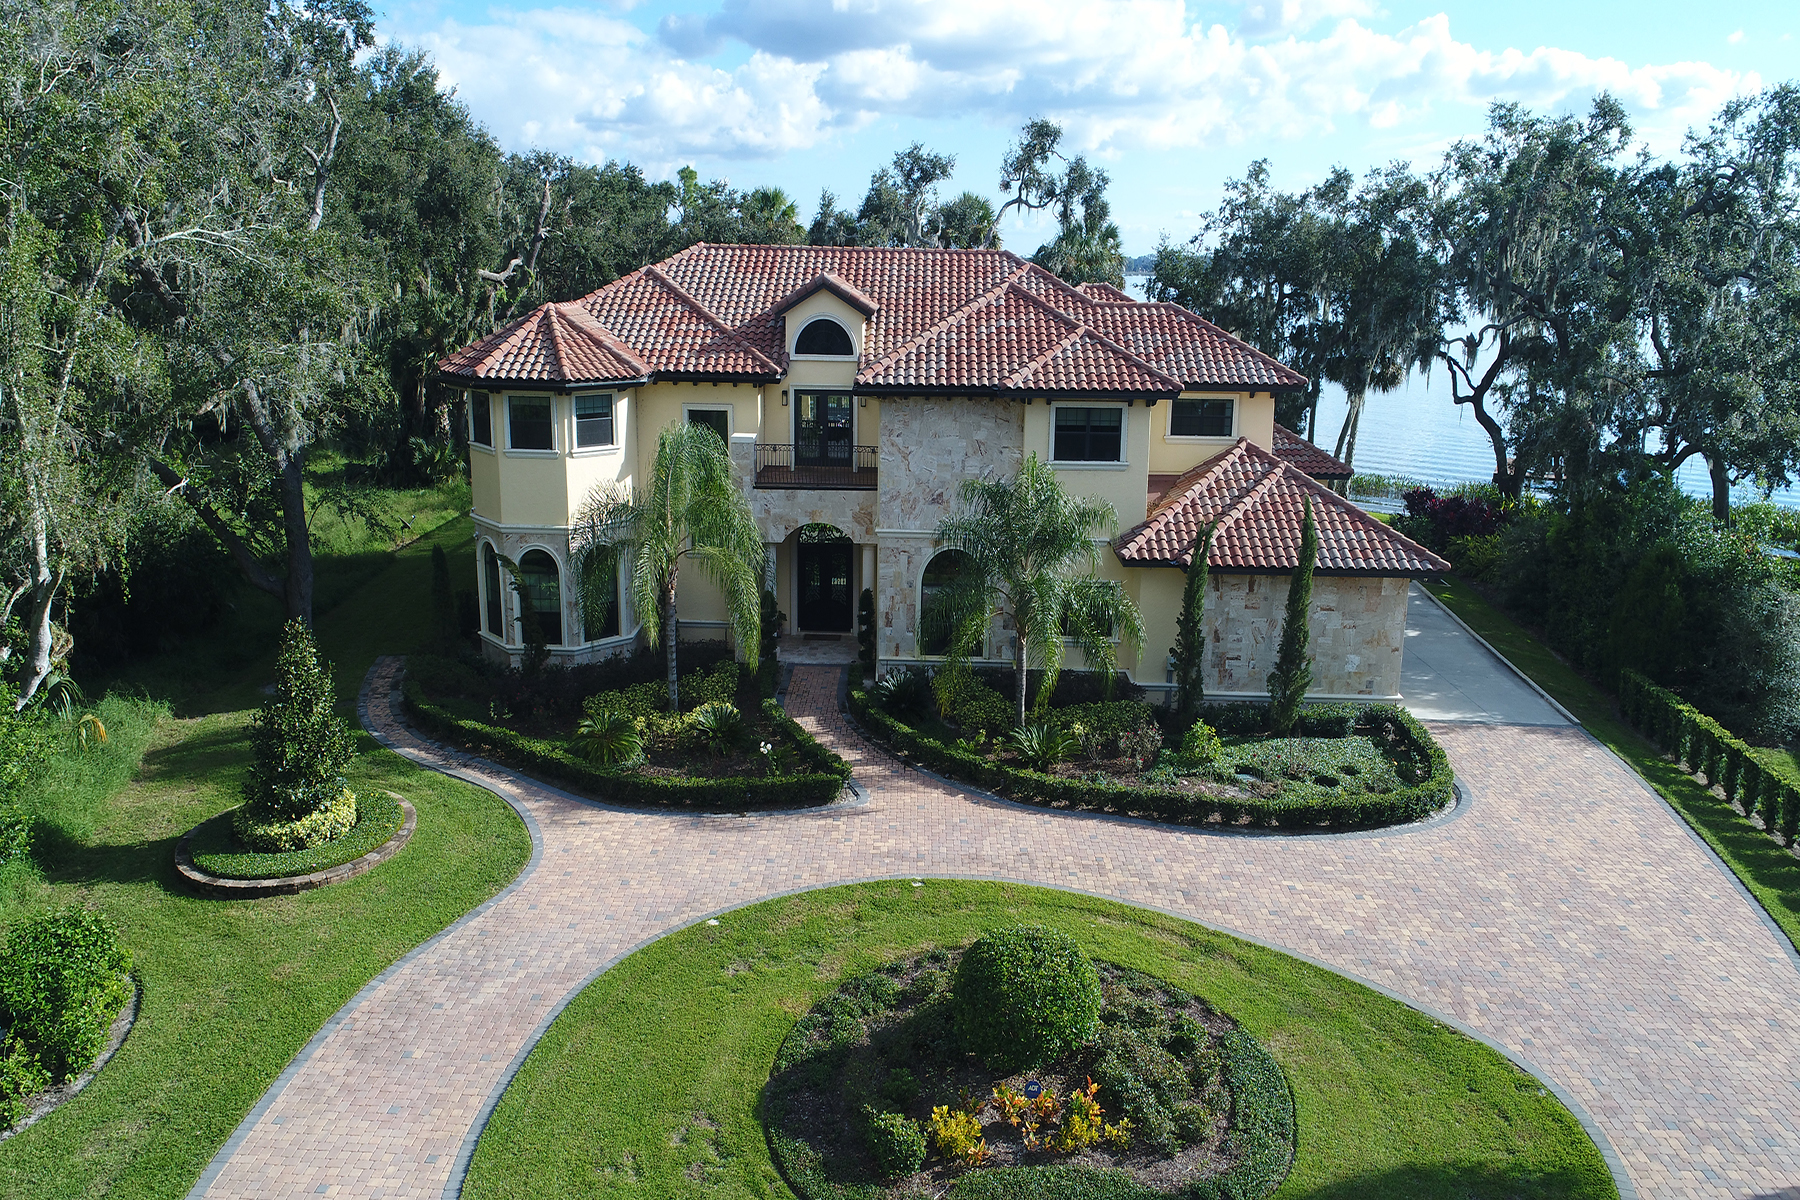 Single Family Home for Sale at MOUNT DORA-ORLANDO 400 Lakeshore Pointe Blvd Mount Dora, Florida 32757 United States